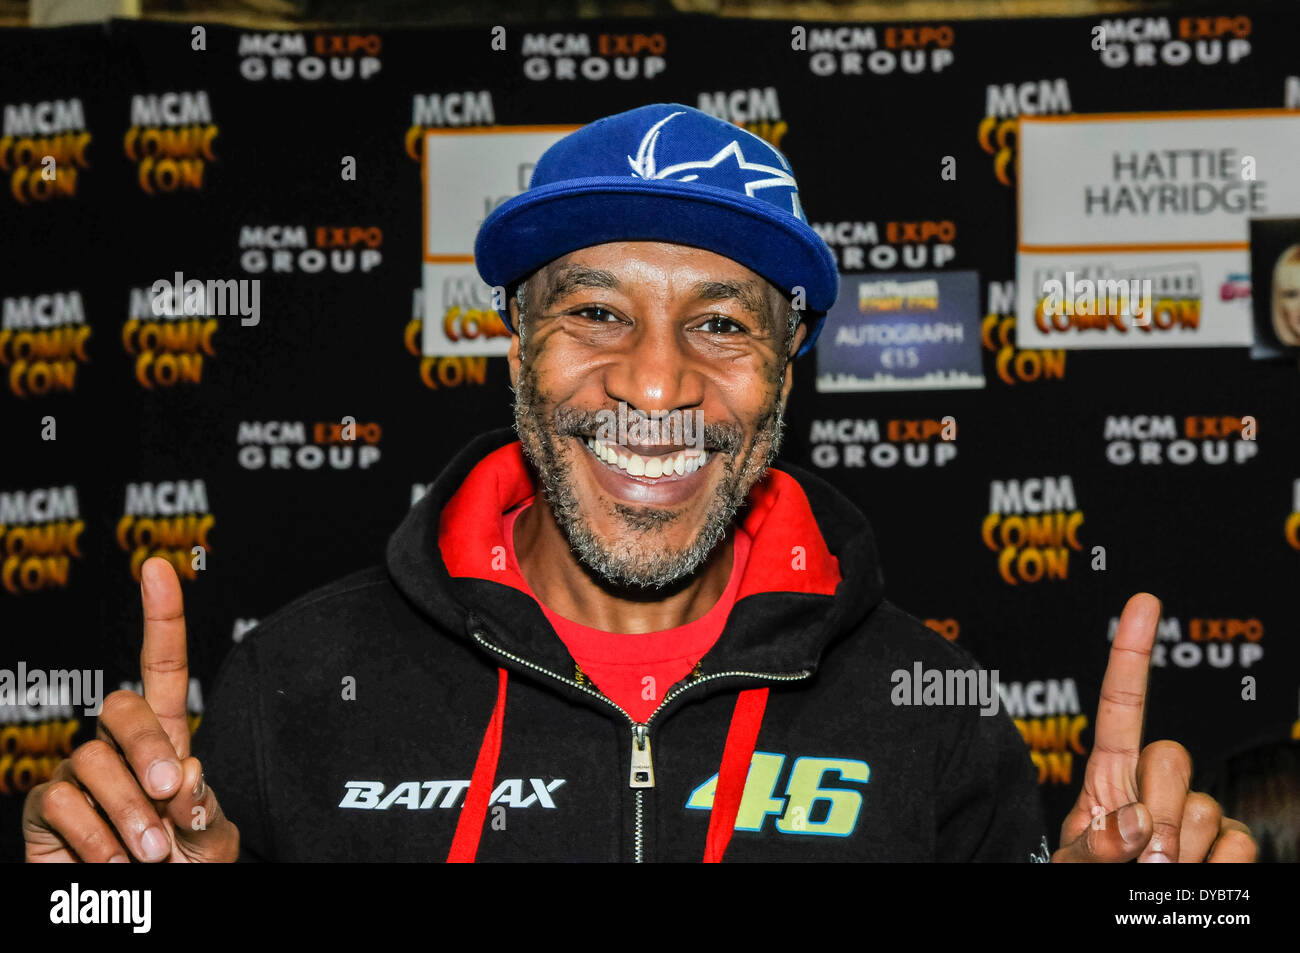 Dublin, Ireland. 13 Apr 2014 - Danny John Jules, most famous for playing 'Cat' in Red Dwarf, appears at MCM Comic Con Credit:  Stephen Barnes/Alamy Live News - Stock Image